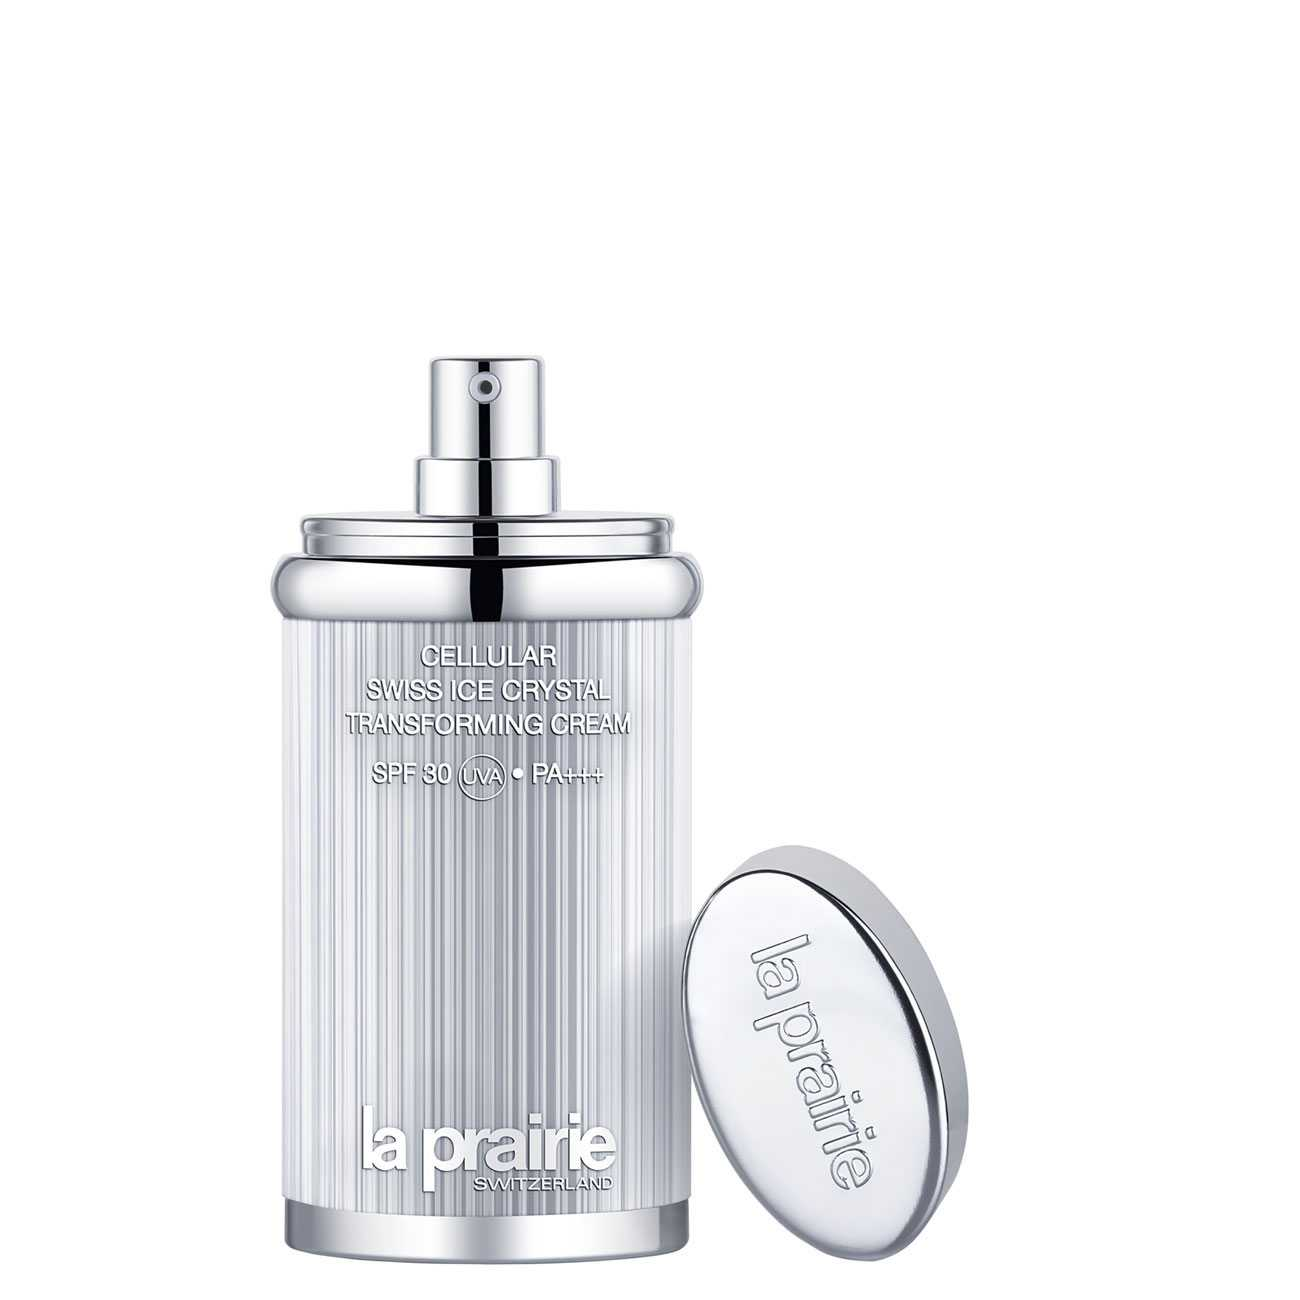 Cellular Swiss Ice Crystal Transforming Cream 30 Ml Tan 40 La Prairie imagine 2021 bestvalue.eu